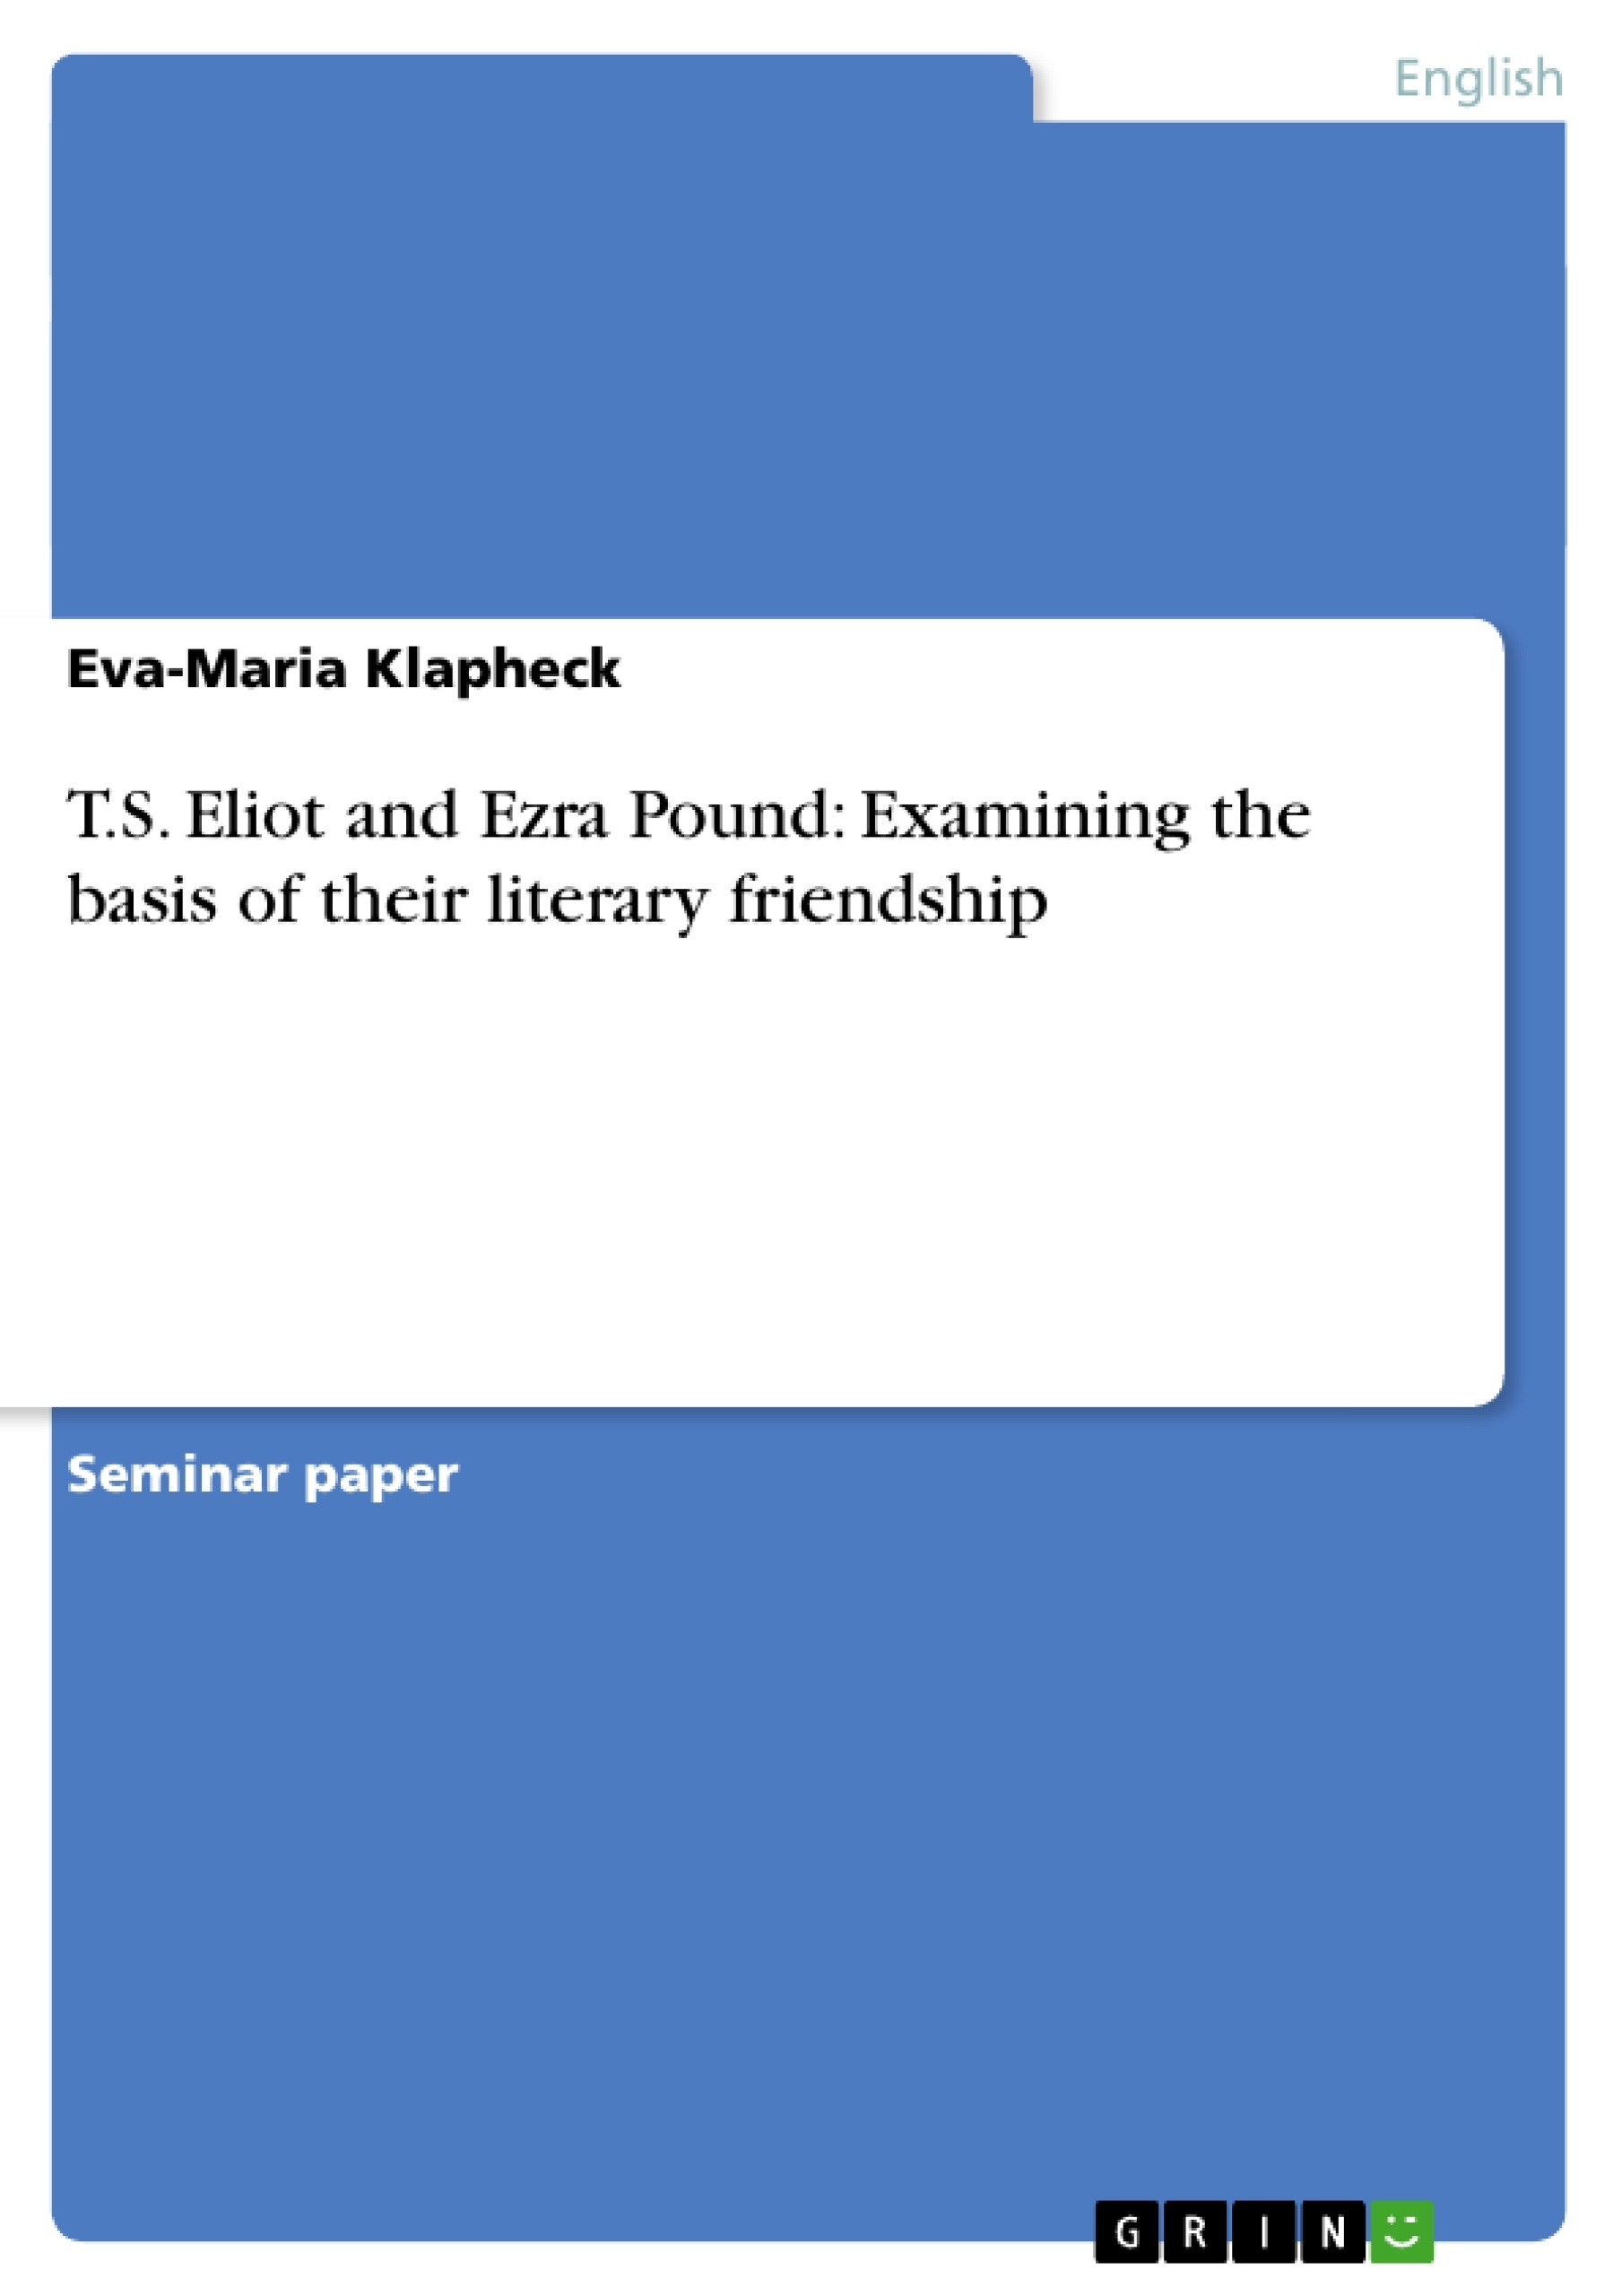 Title: T.S. Eliot and Ezra Pound: Examining the basis of their literary friendship